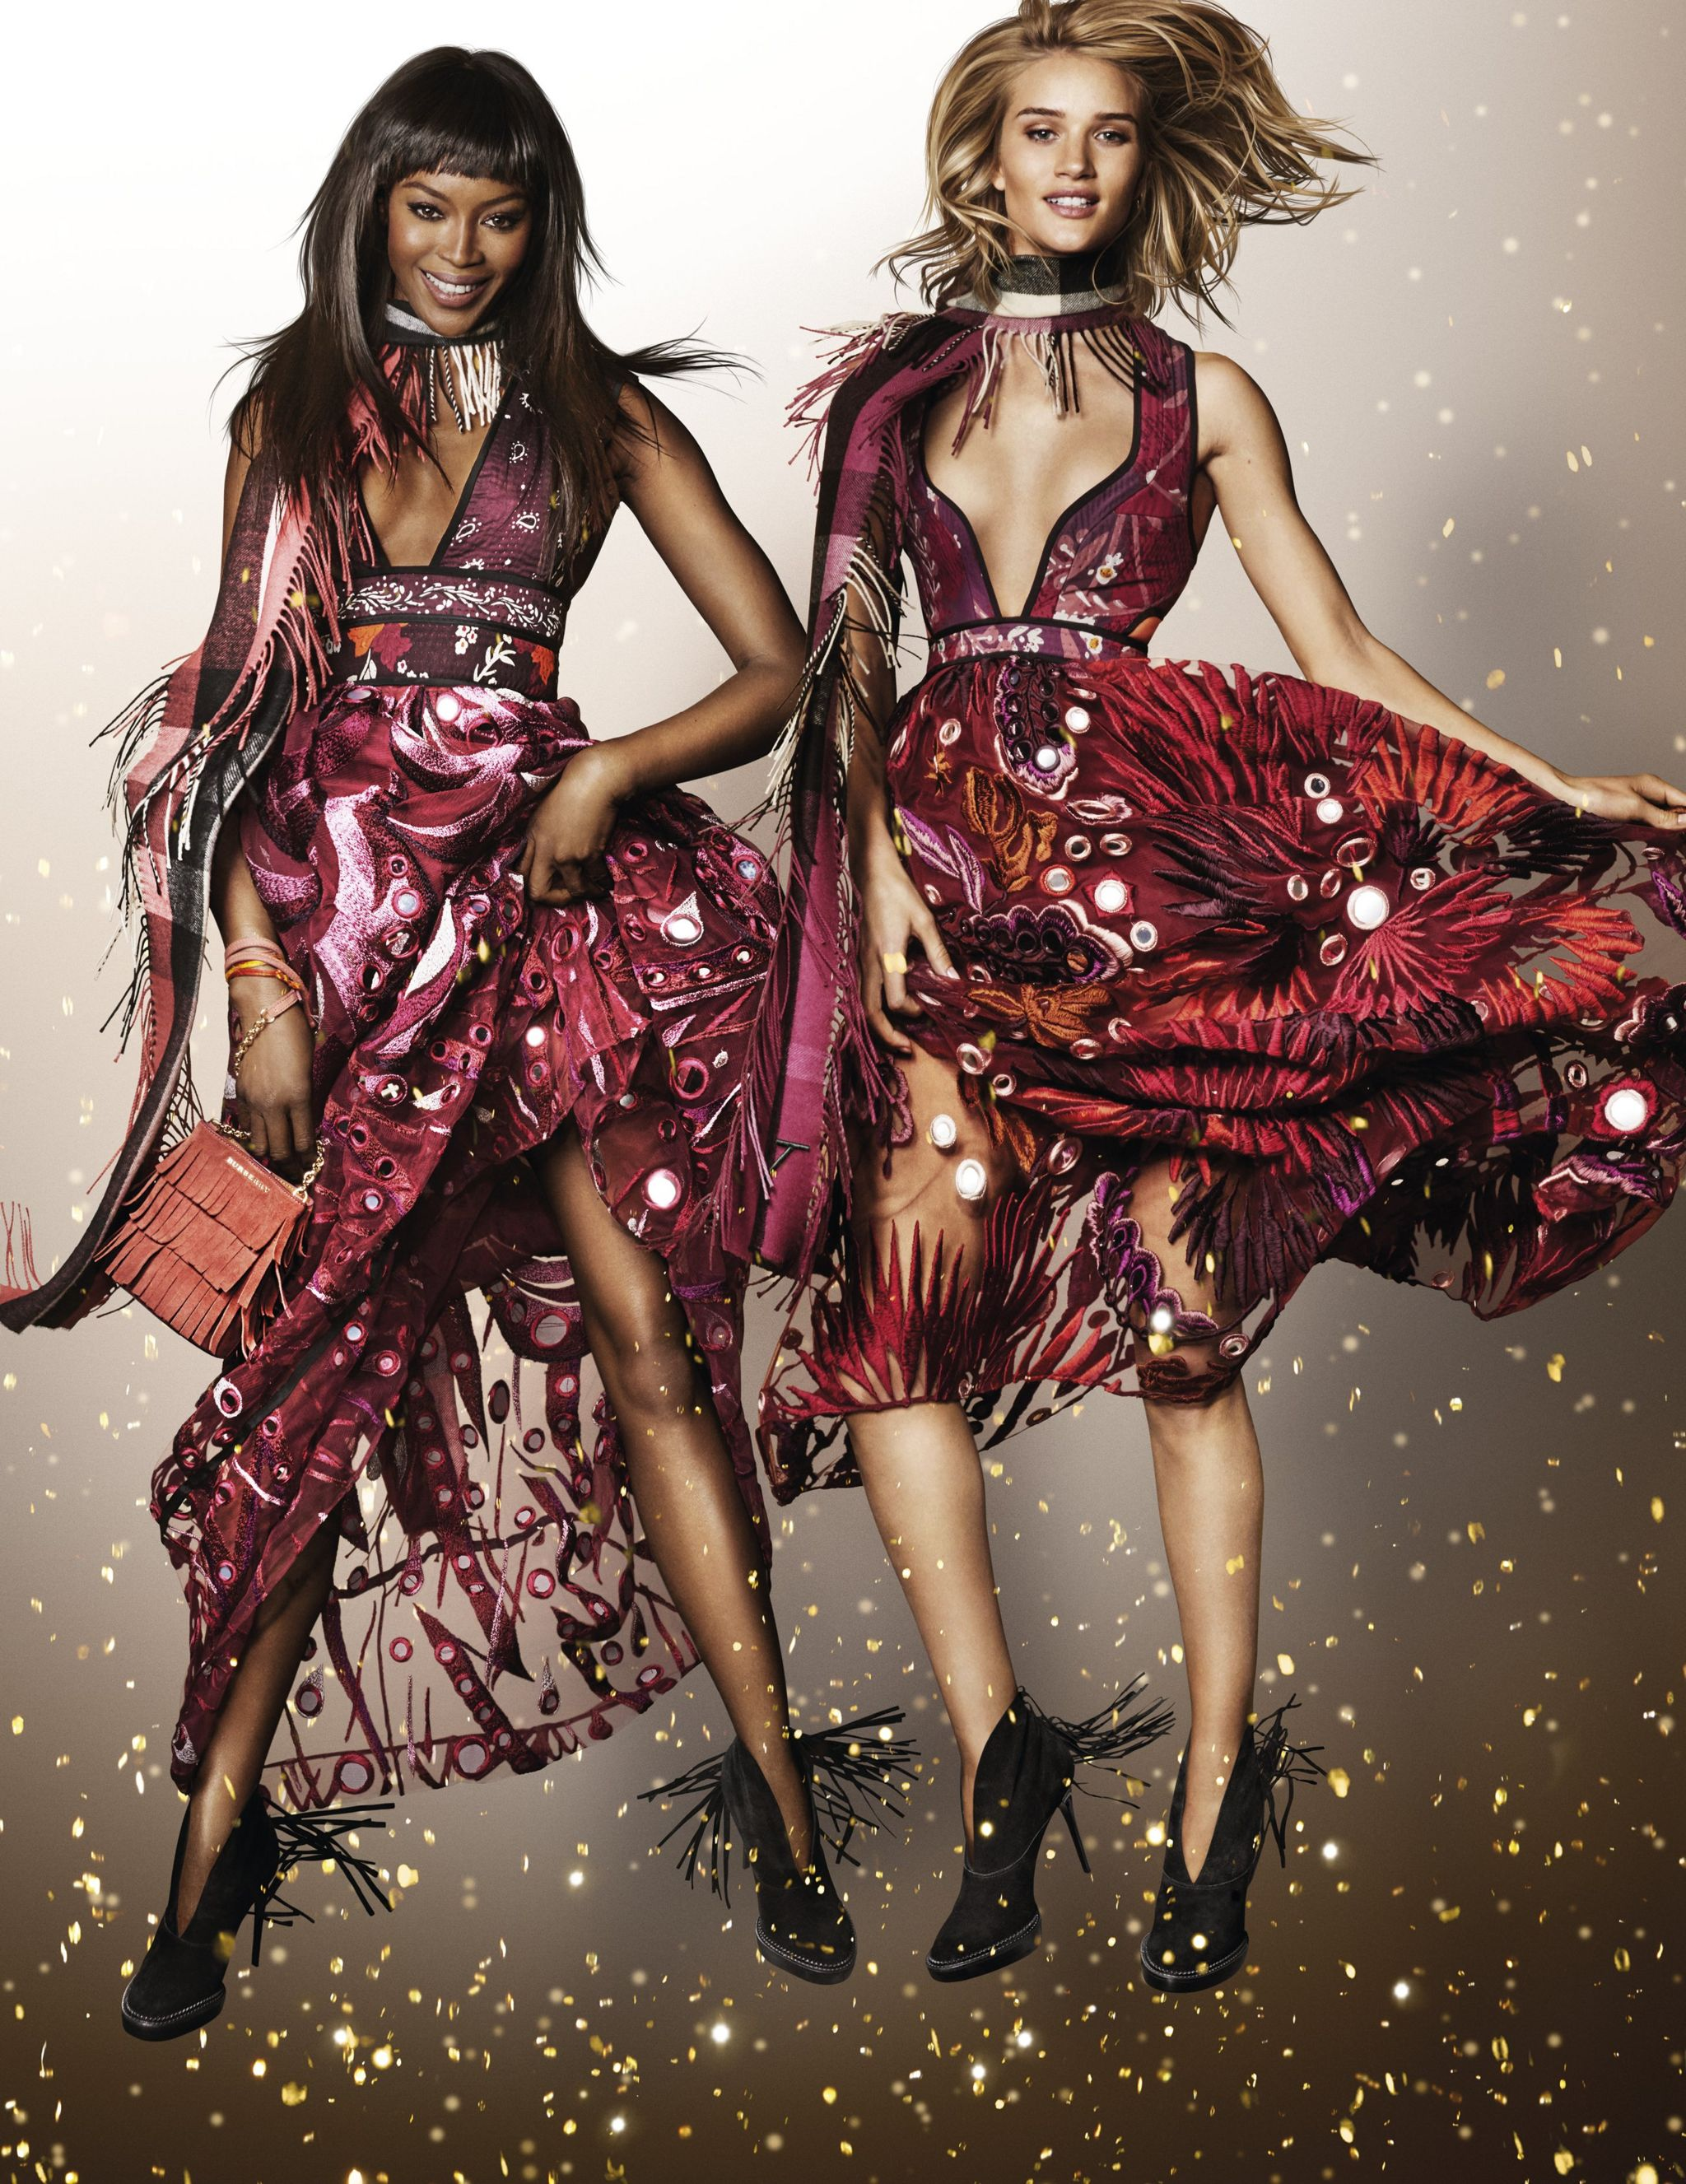 Naomi Campbell and Rosie Huntington-Whiteley in a Burberry campaign